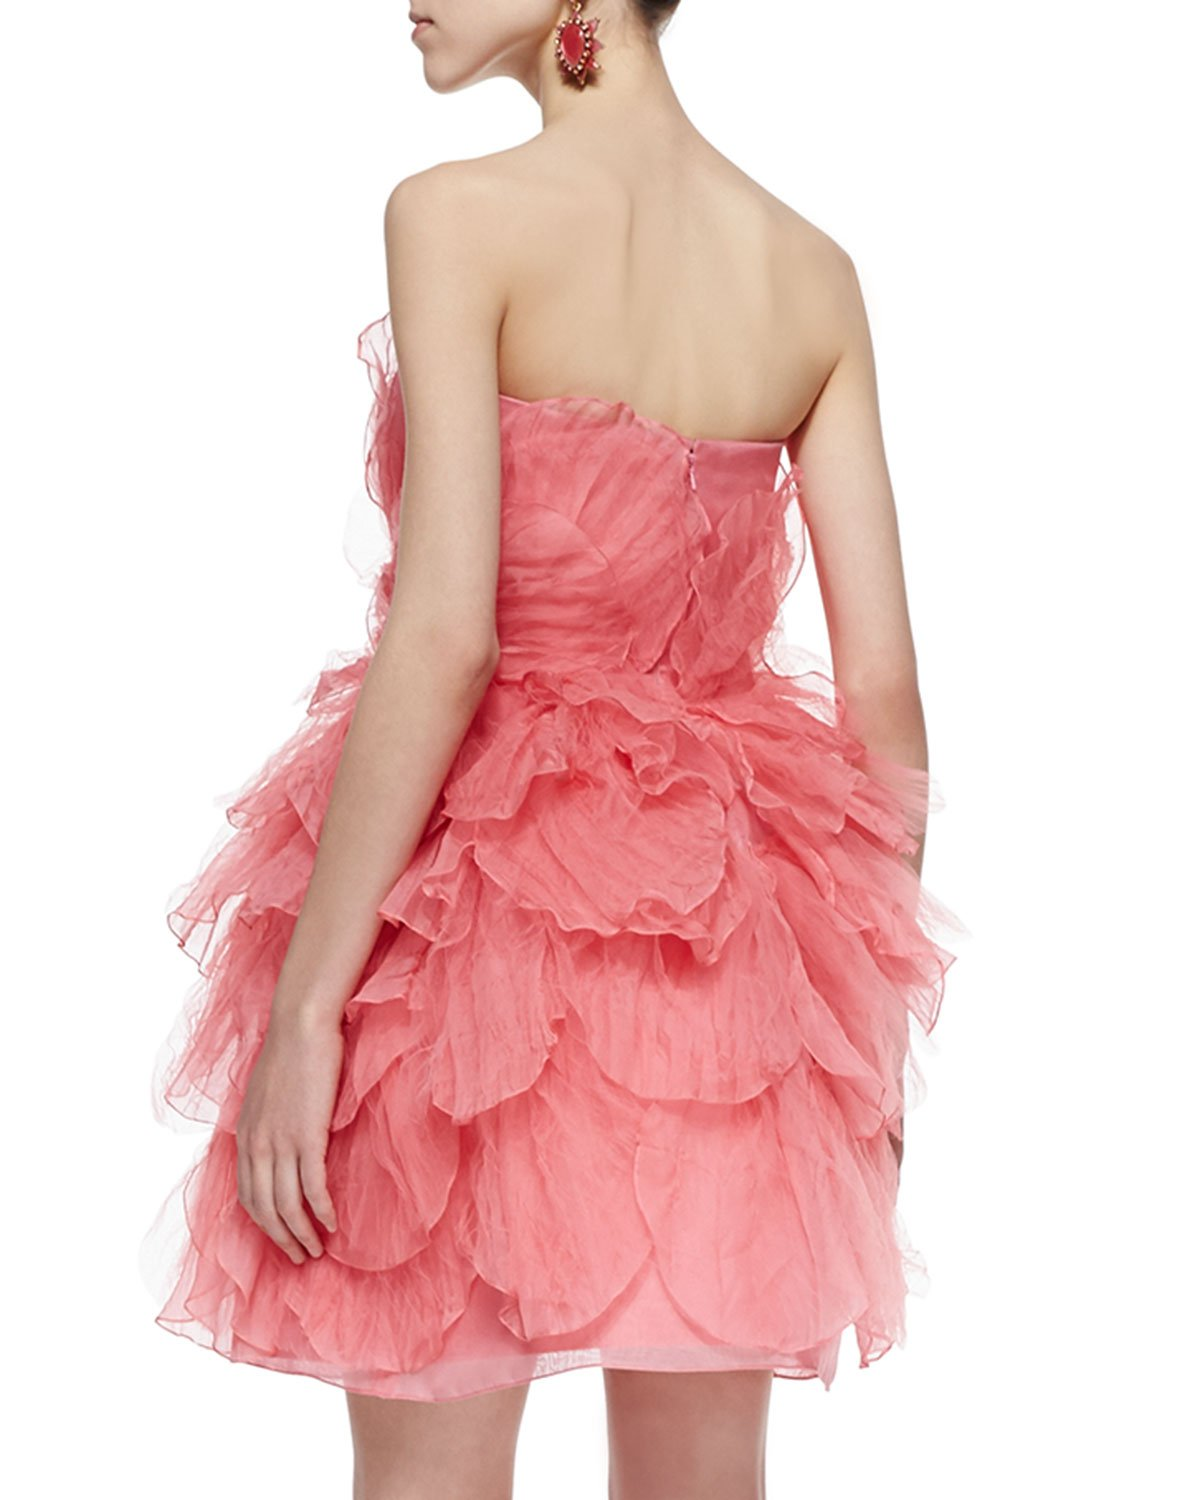 pink strapless tulle dress